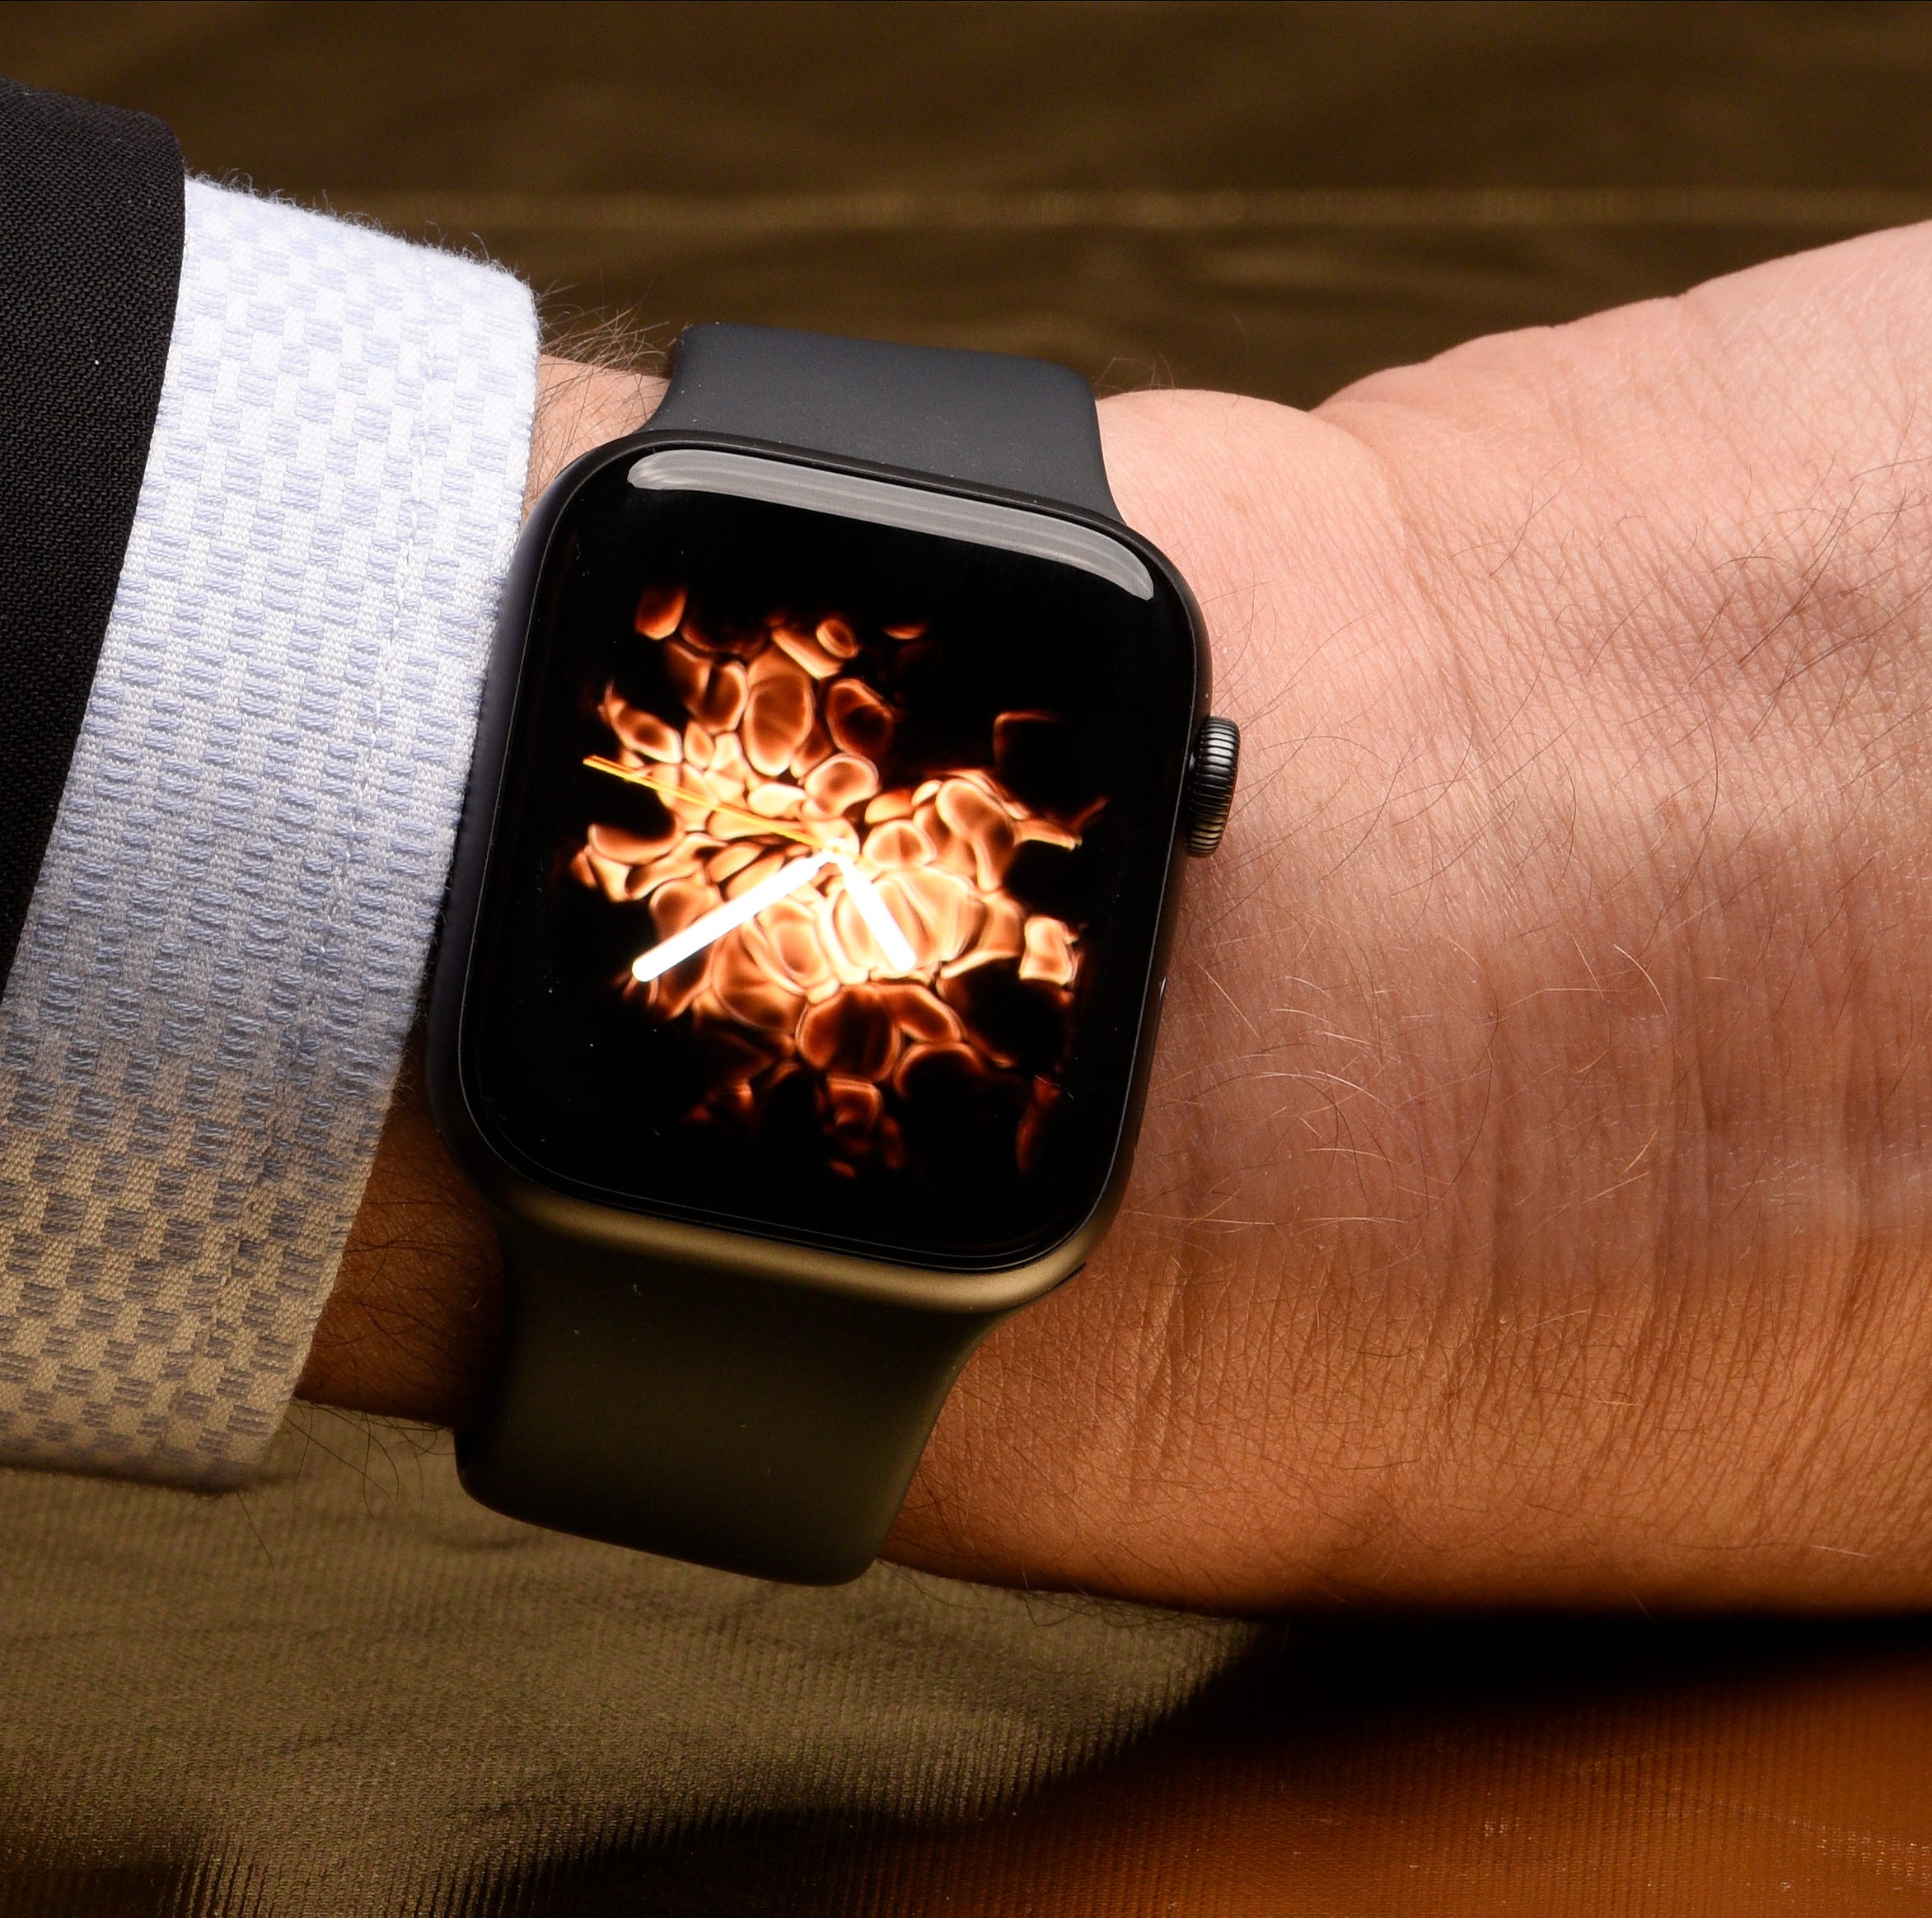 Apple Watch Series 4 Review: Bigger display, fall detection and ECG may make it the time to upgrade